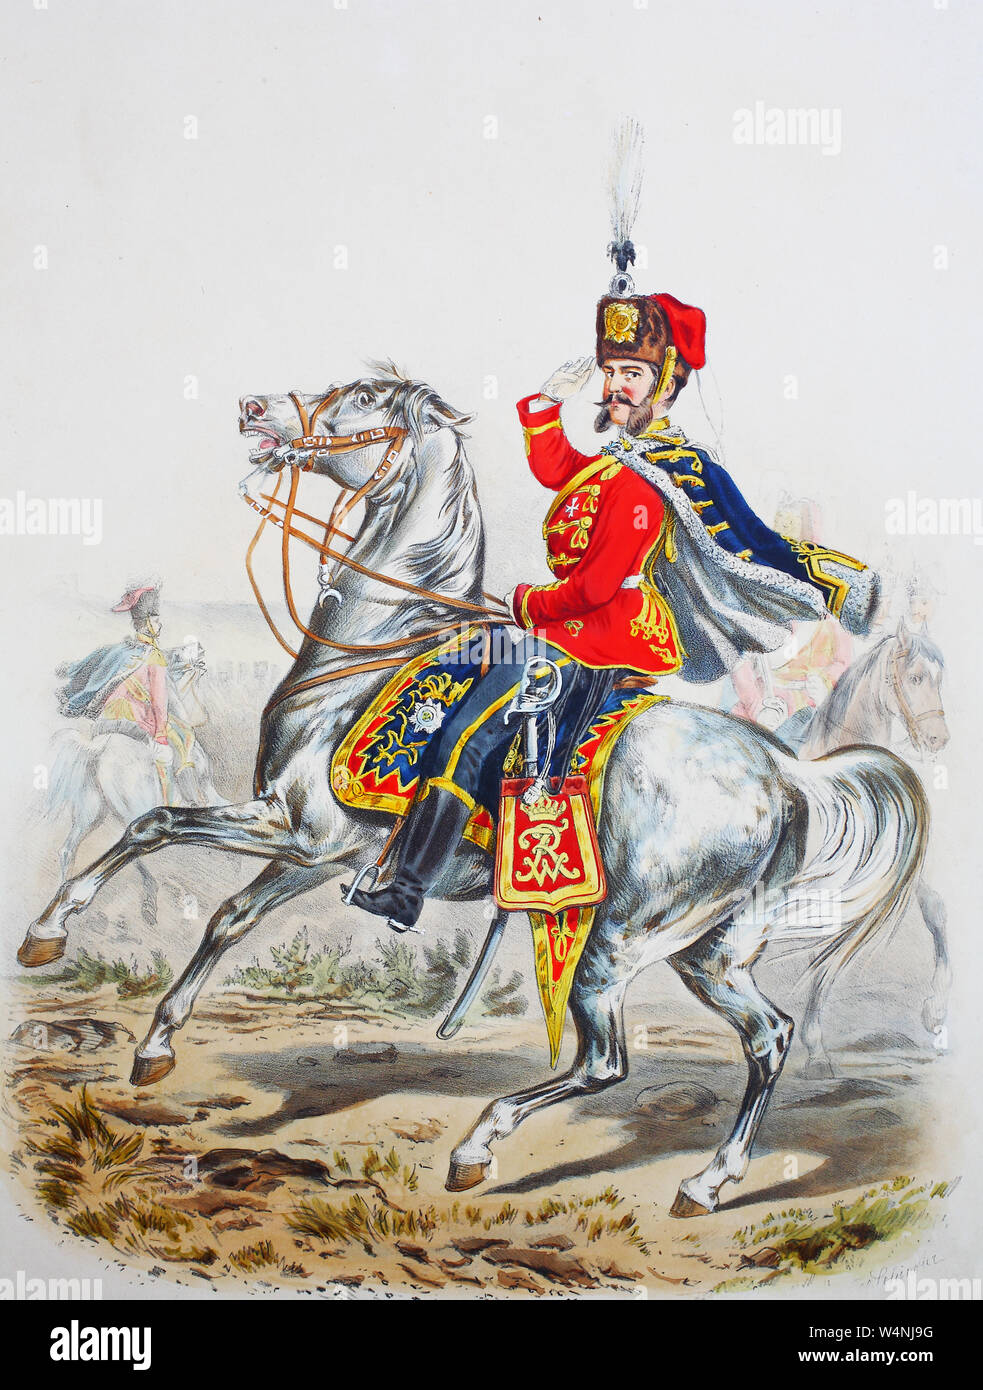 Royal Prussian Army, Guards Corps, Preußens Heer, preussische Garde, Garde Husaren Regiment, Offizier, Digital improved reproduction of an illustration from the 19th century Stock Photo